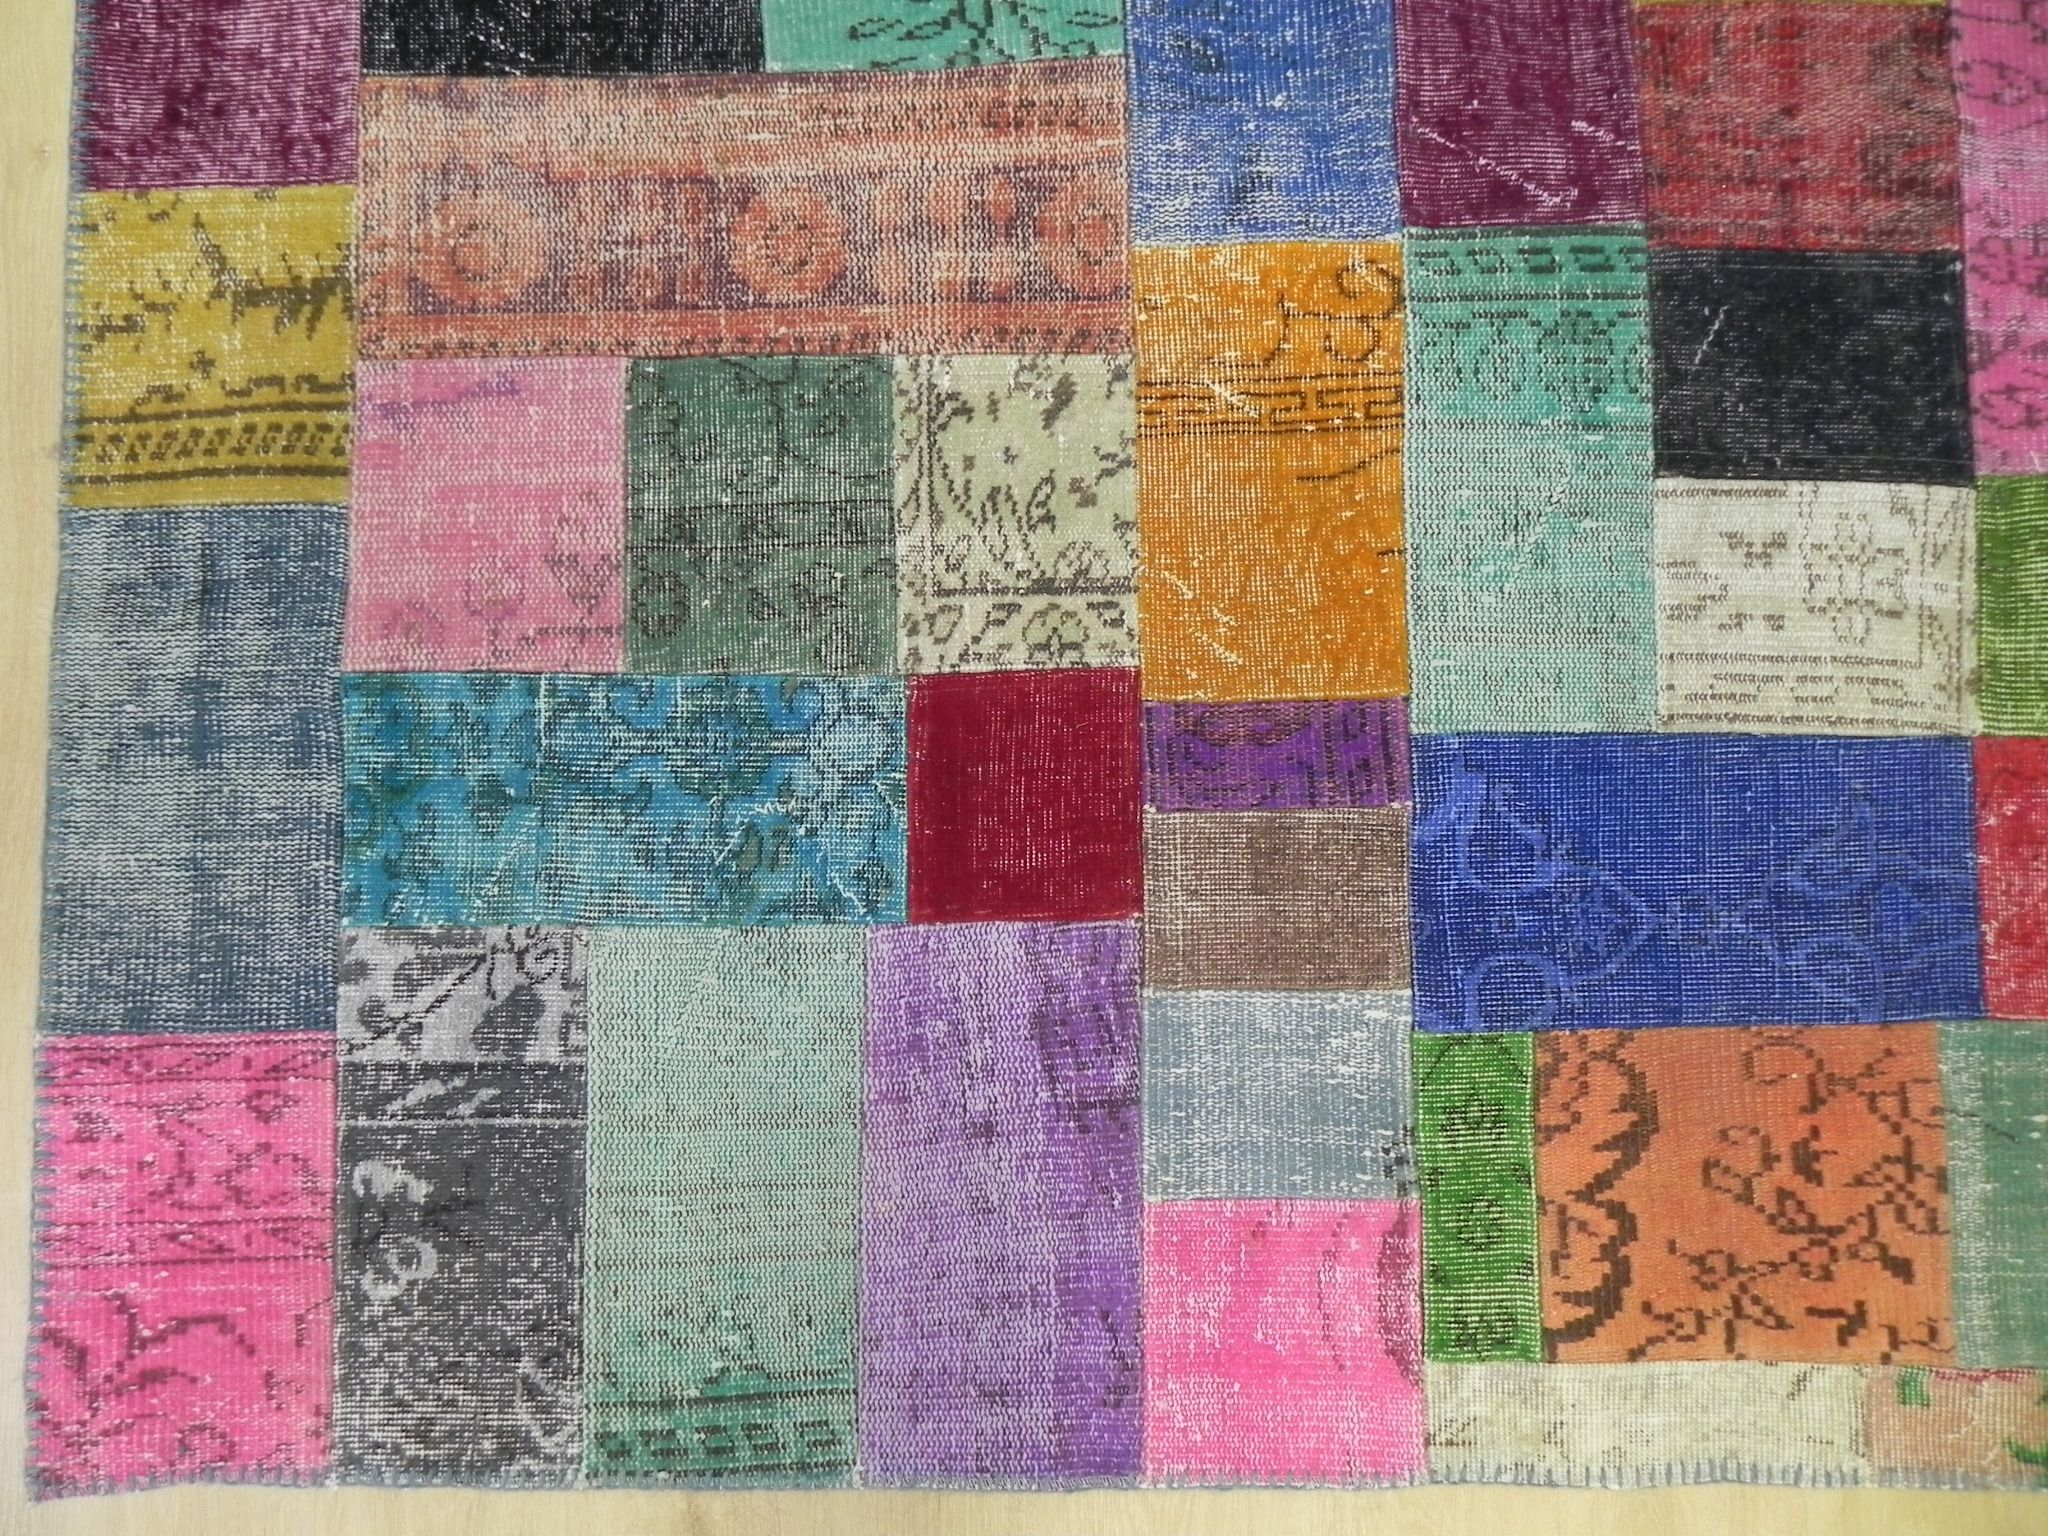 Multicolor Patchwork Rug With Small Patches, Handmade From Vintage ...